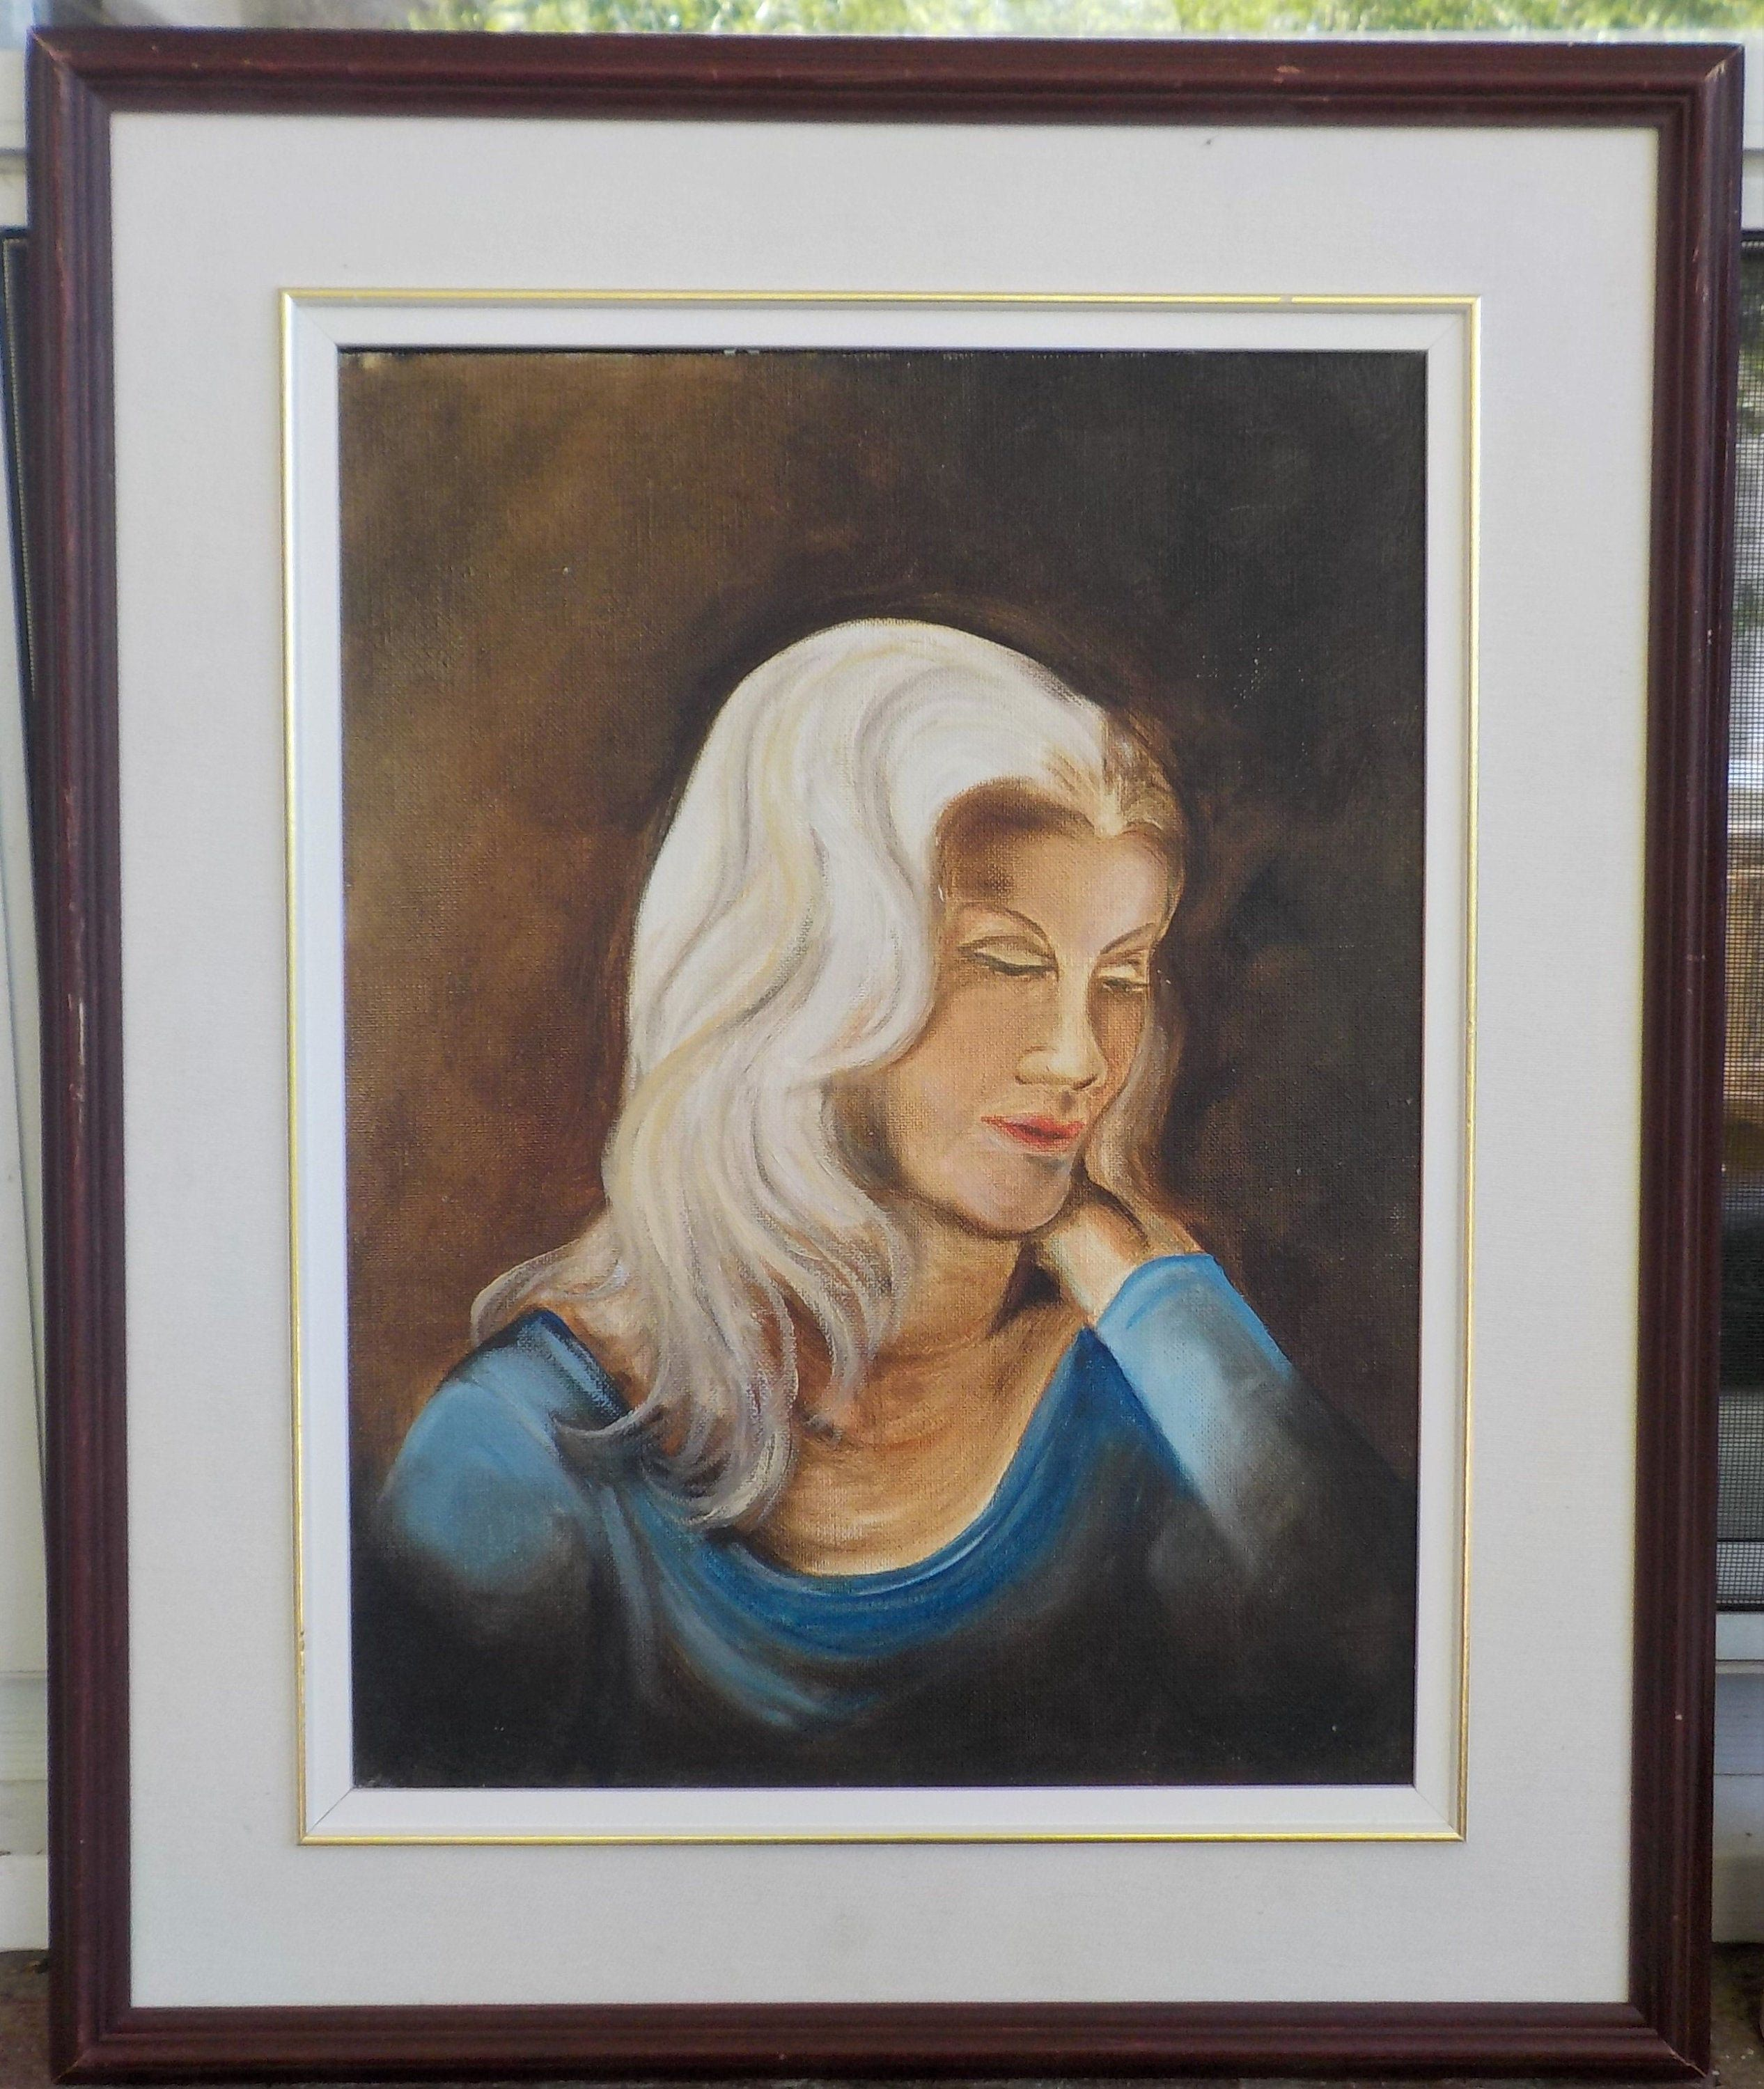 Vintage Retro Platinum White Hair Woman In Blue Naive Oil Etsy In 2020 Portrait Painting Oil Painting Portrait Painting